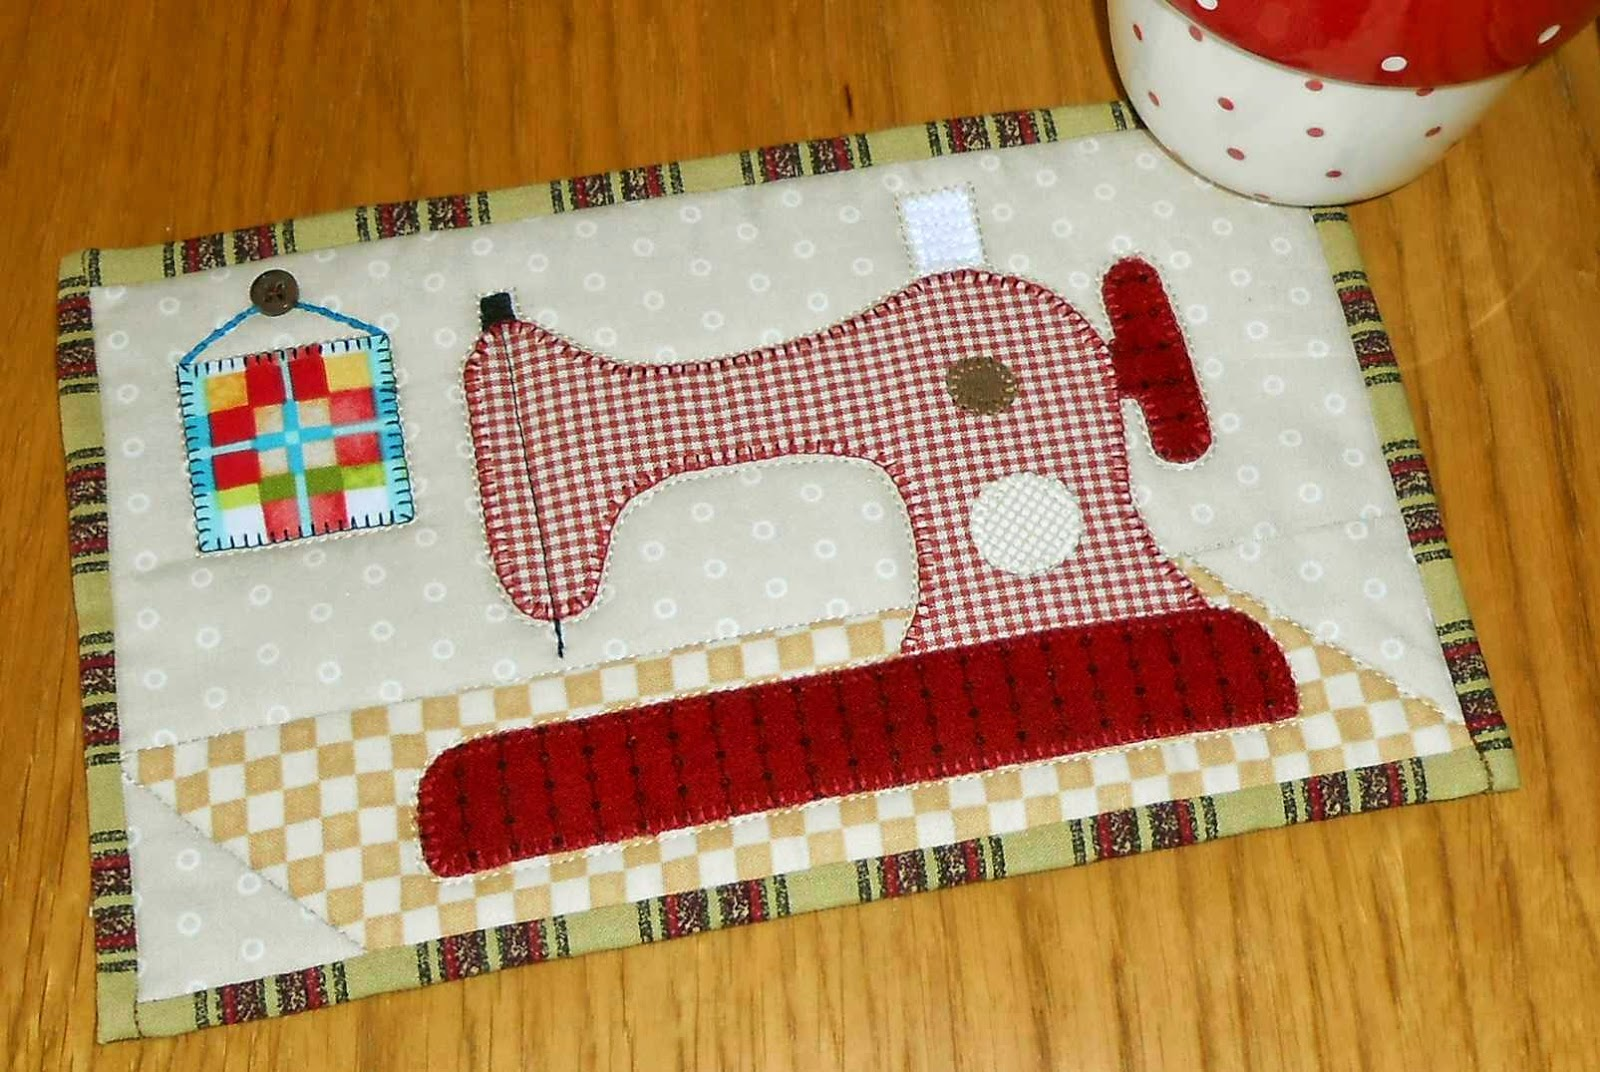 http://www.craftsy.com/pattern/quilting/home-decor/sewing-machine-mug-rug/94623